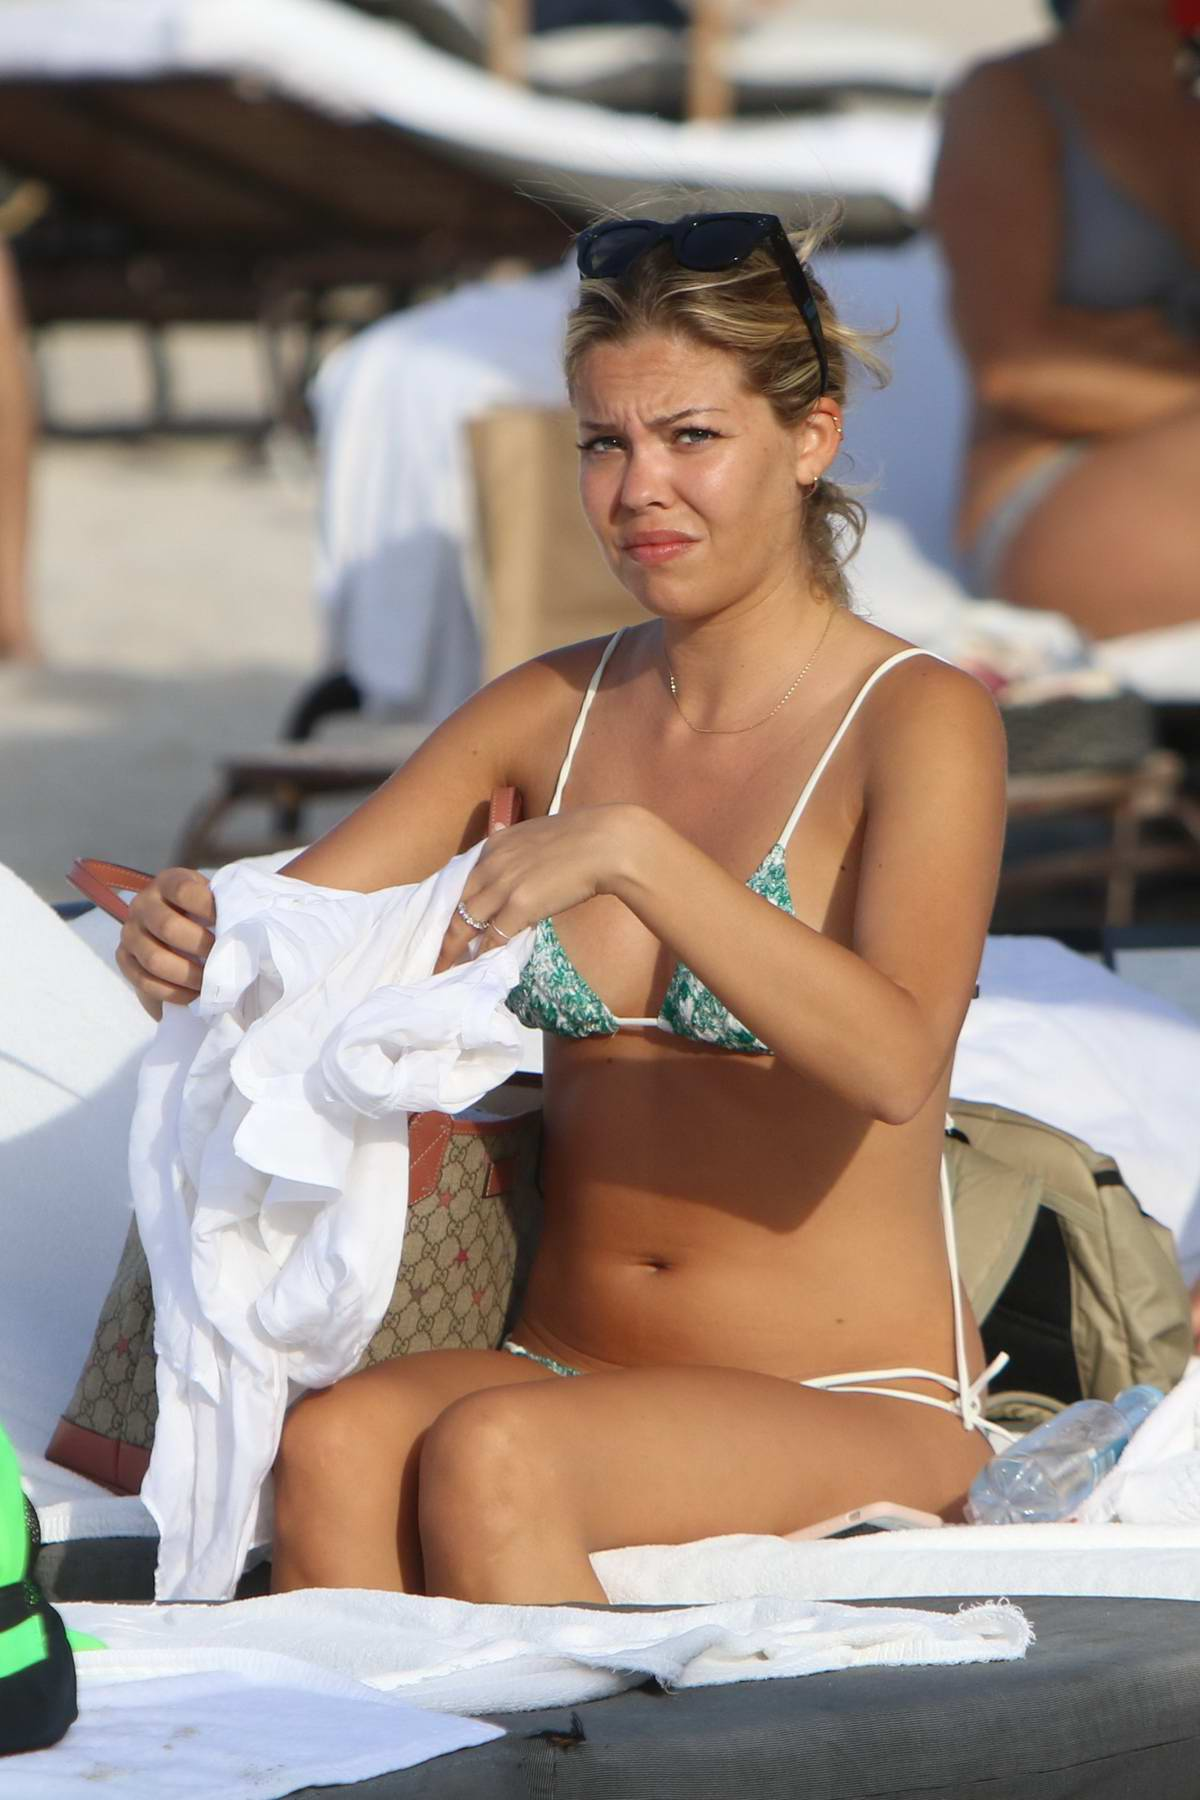 Constance Caracciolo in a bikini enjoying the sun at the beach in Miami, Florida